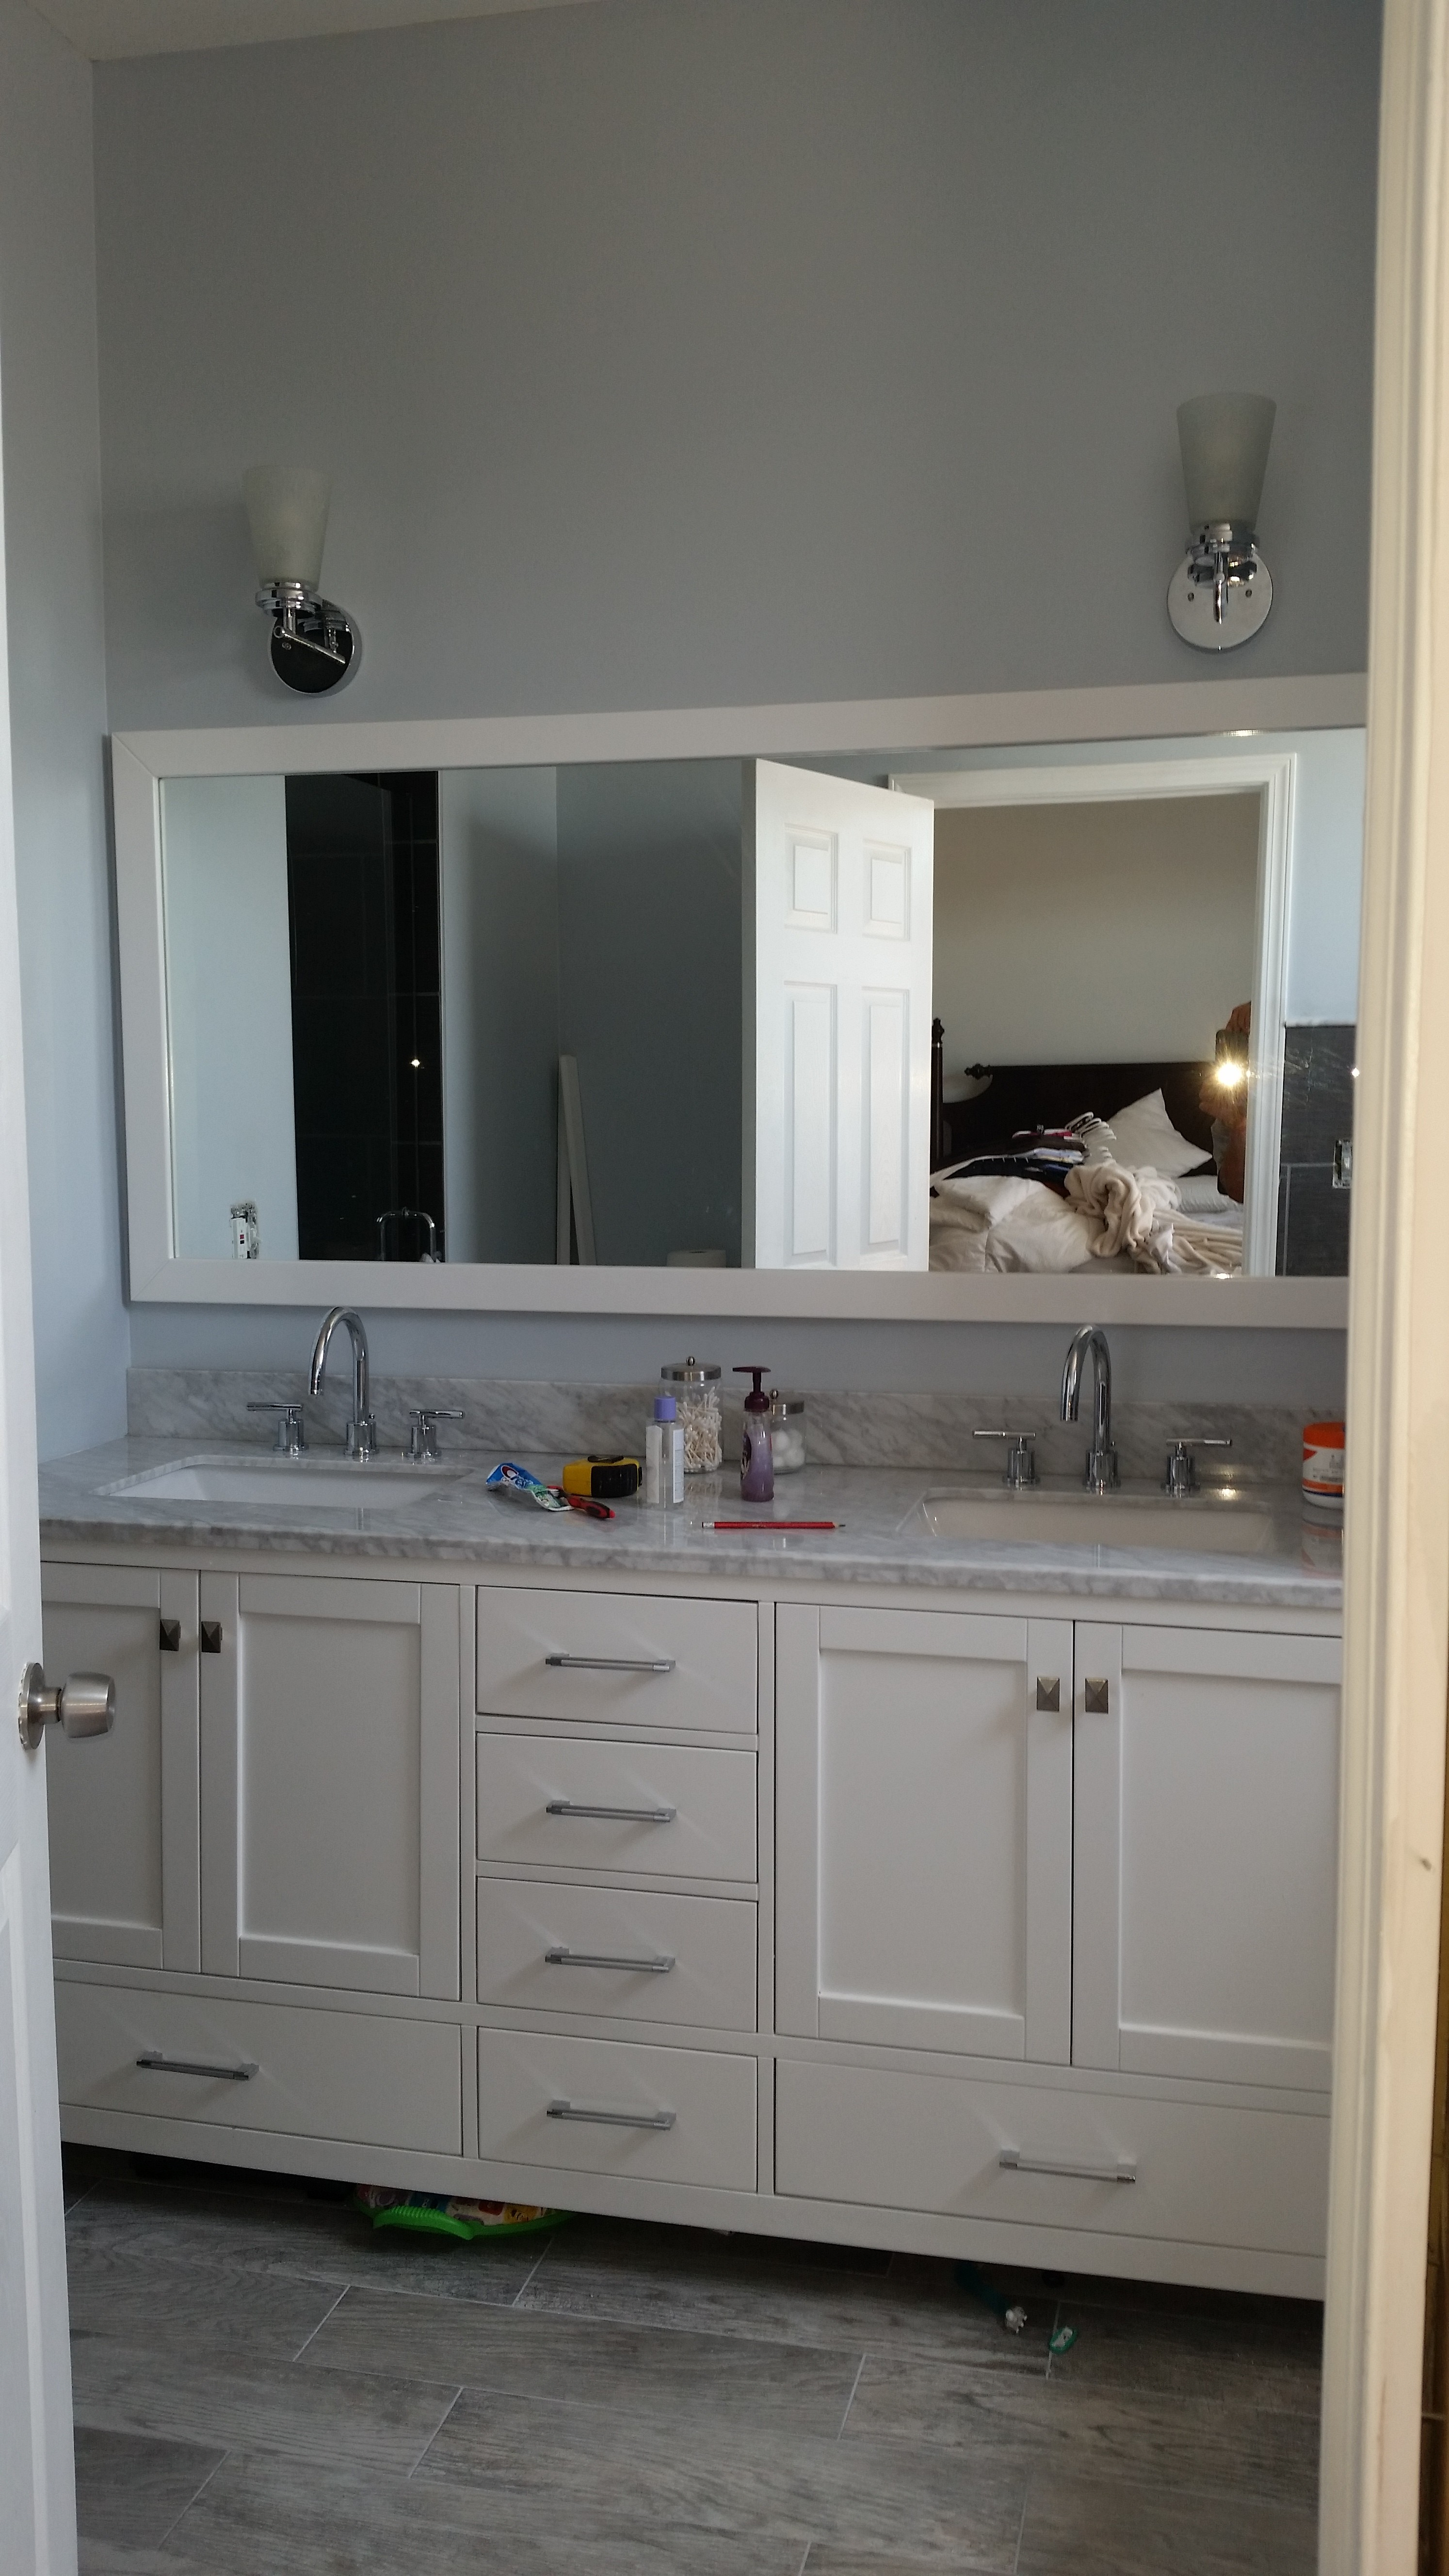 Contact Cornerstone Kitchens And Baths